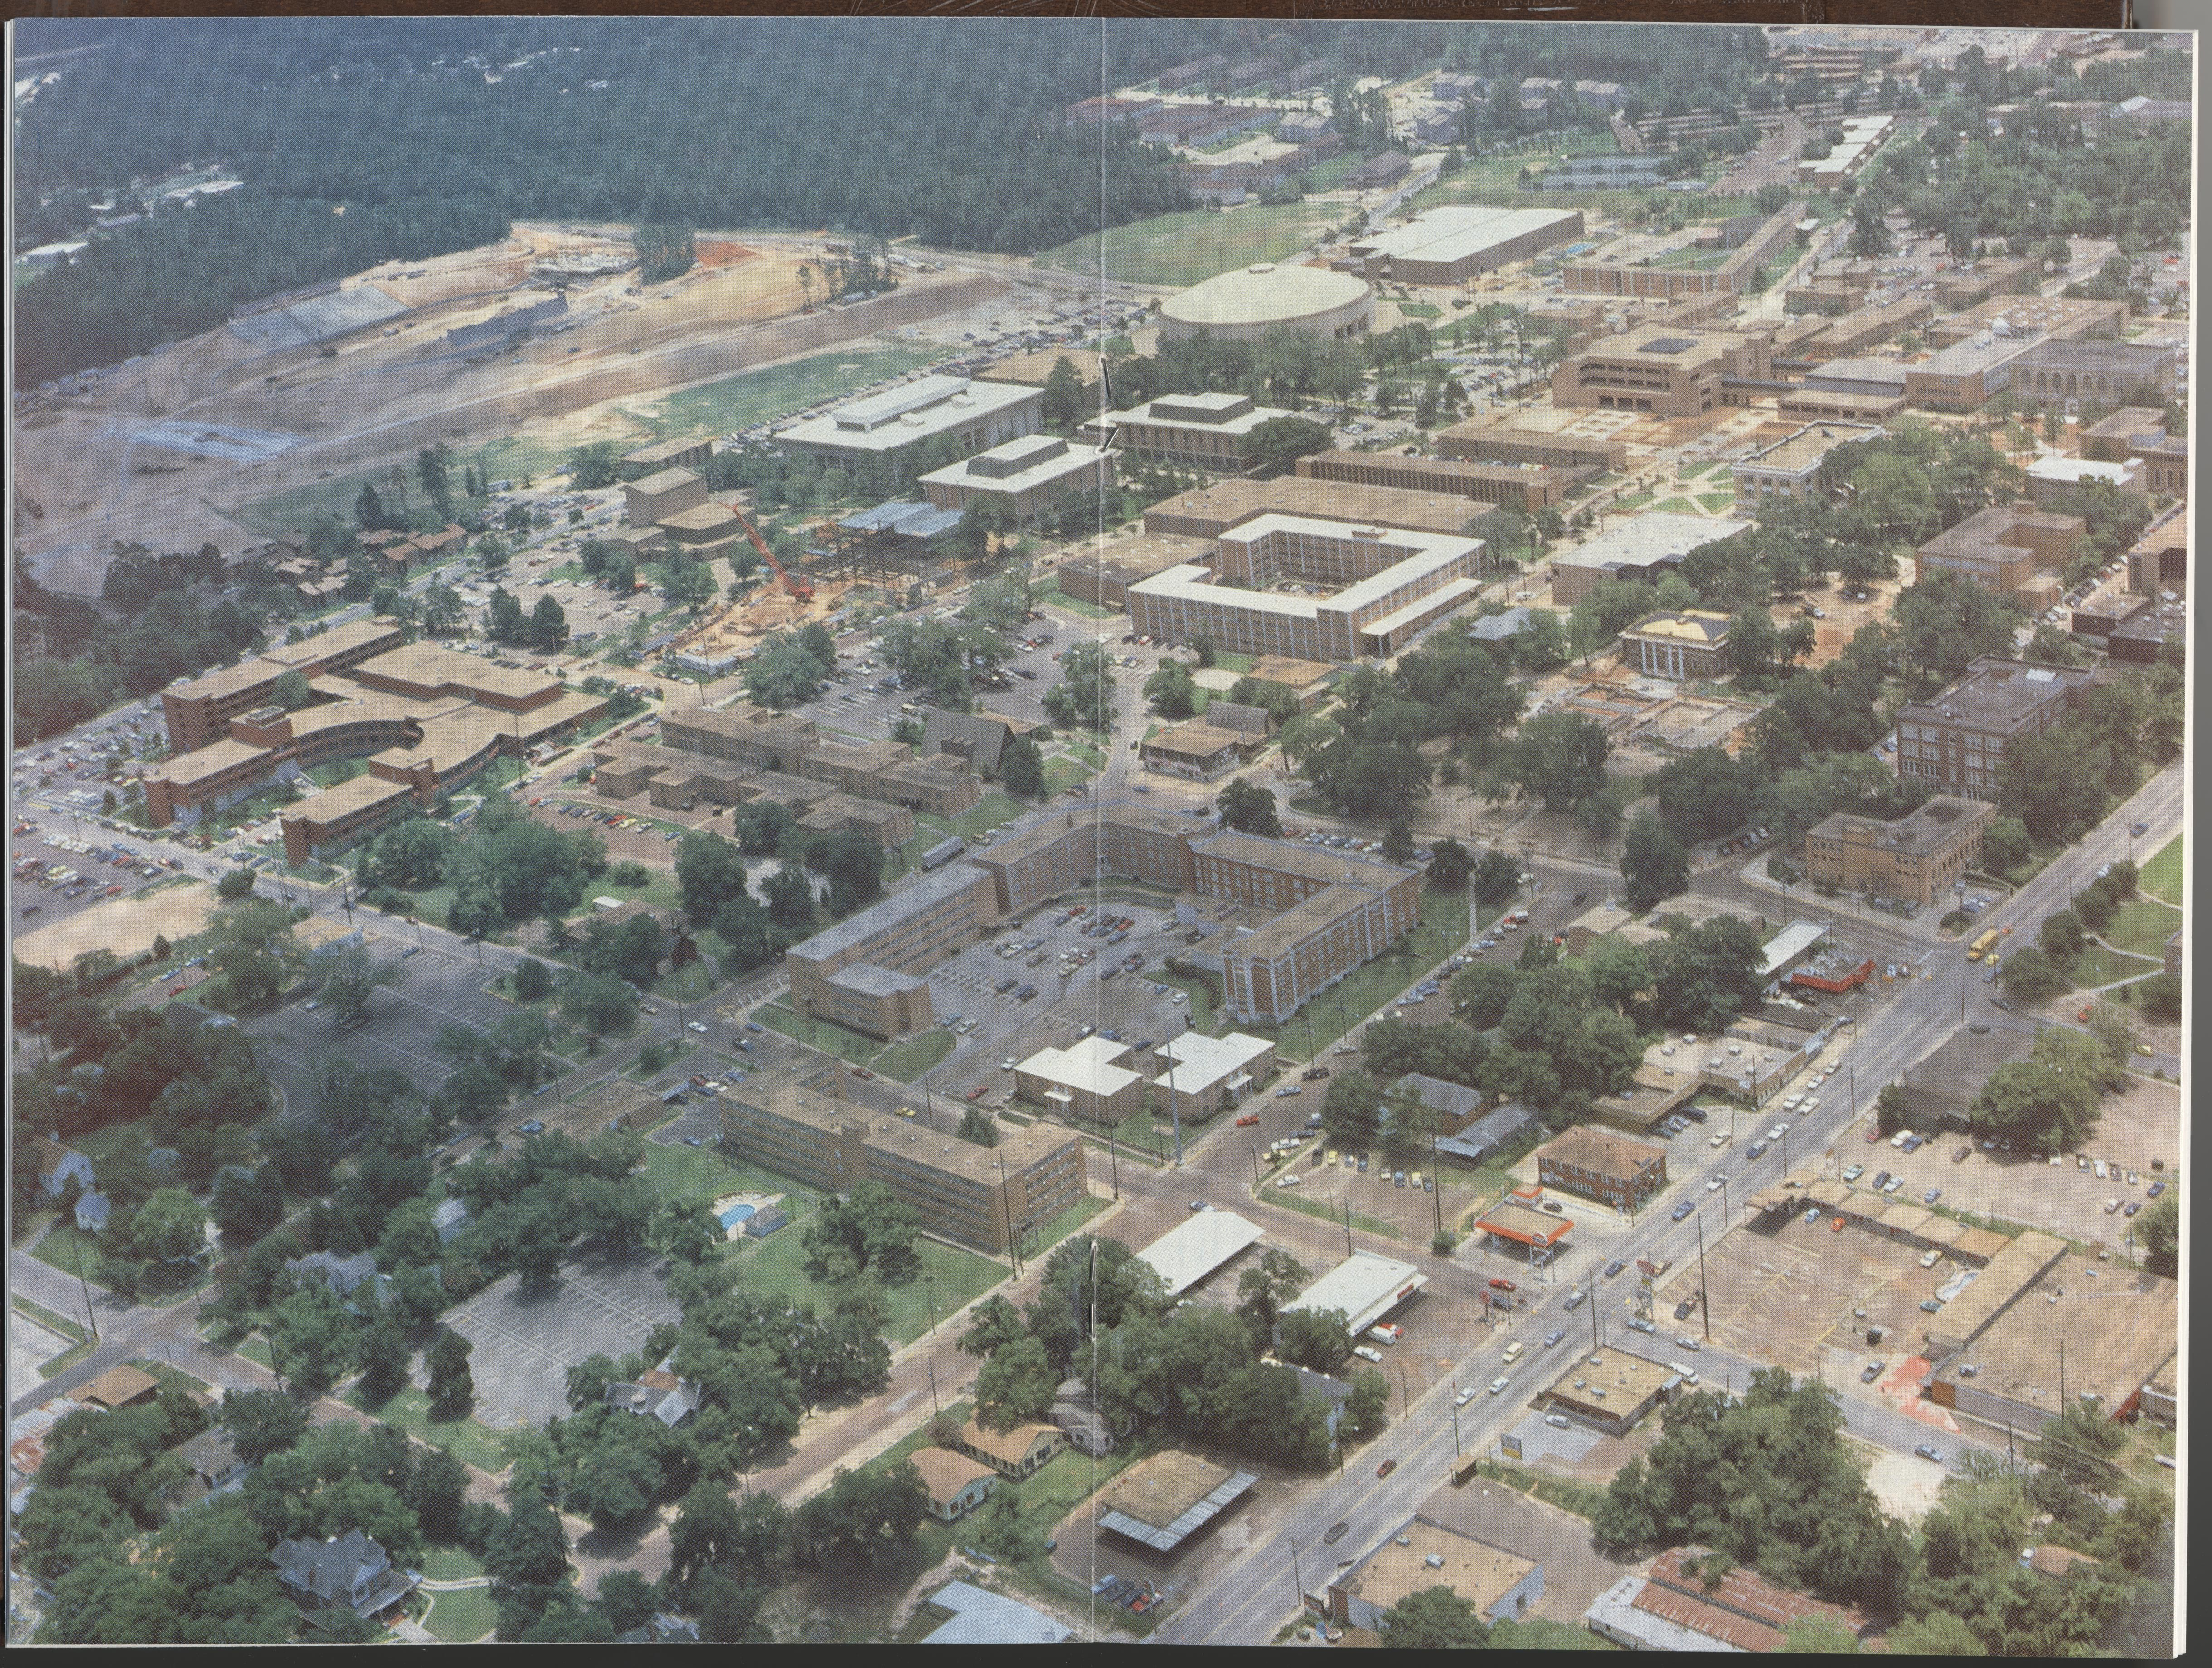 A 1985 aerial view of the Sam Houston State University Campus ...